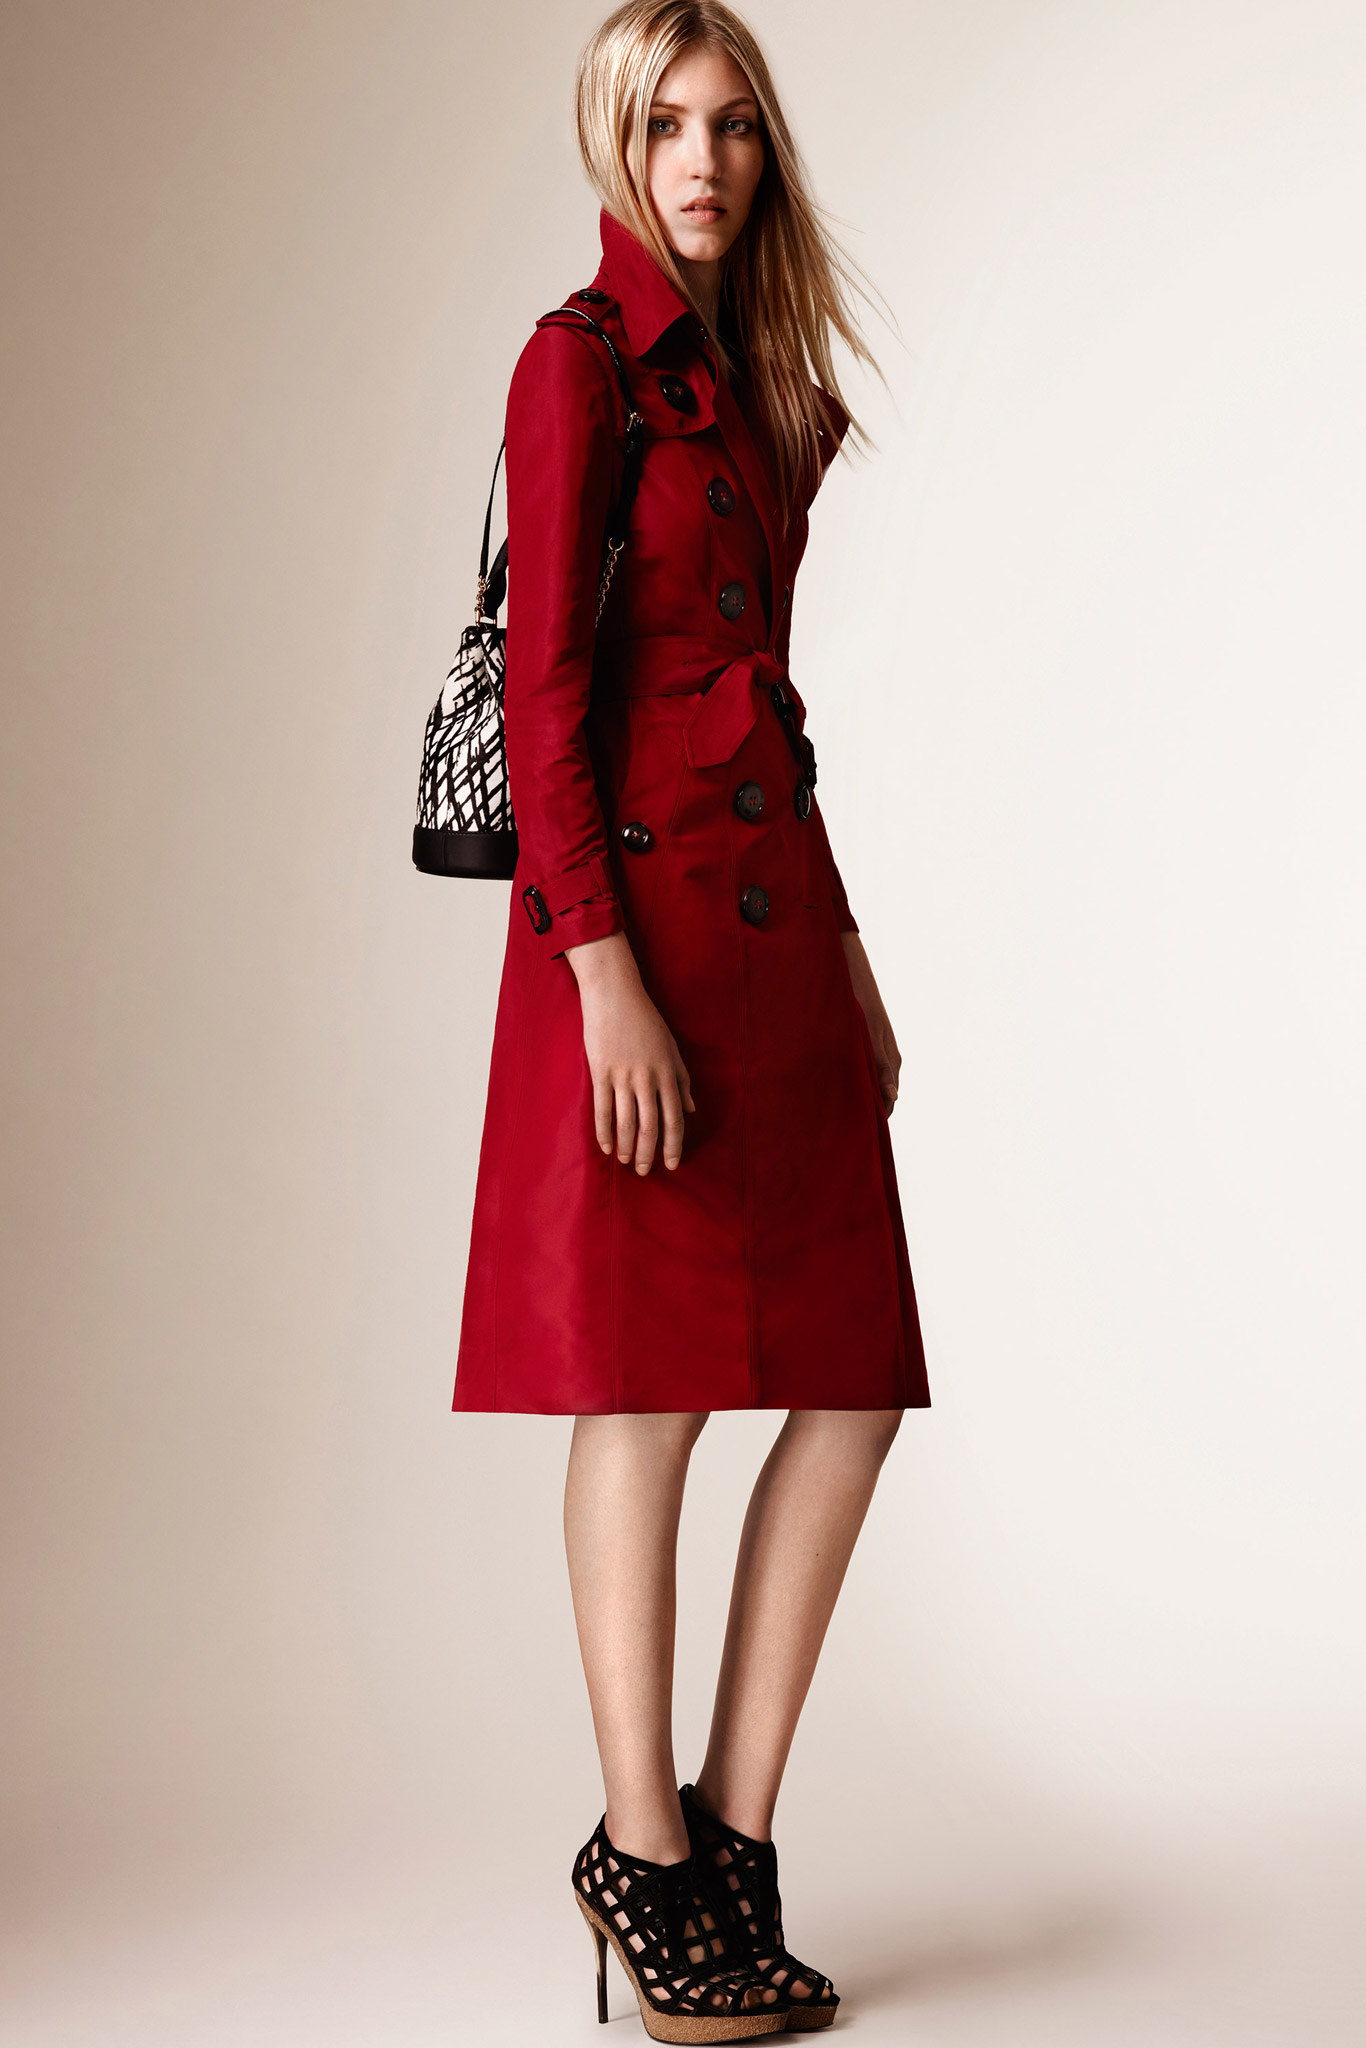 Burberry Prorsum Runway London Fashion Week Aw14: The Best Looks From Resort 2016